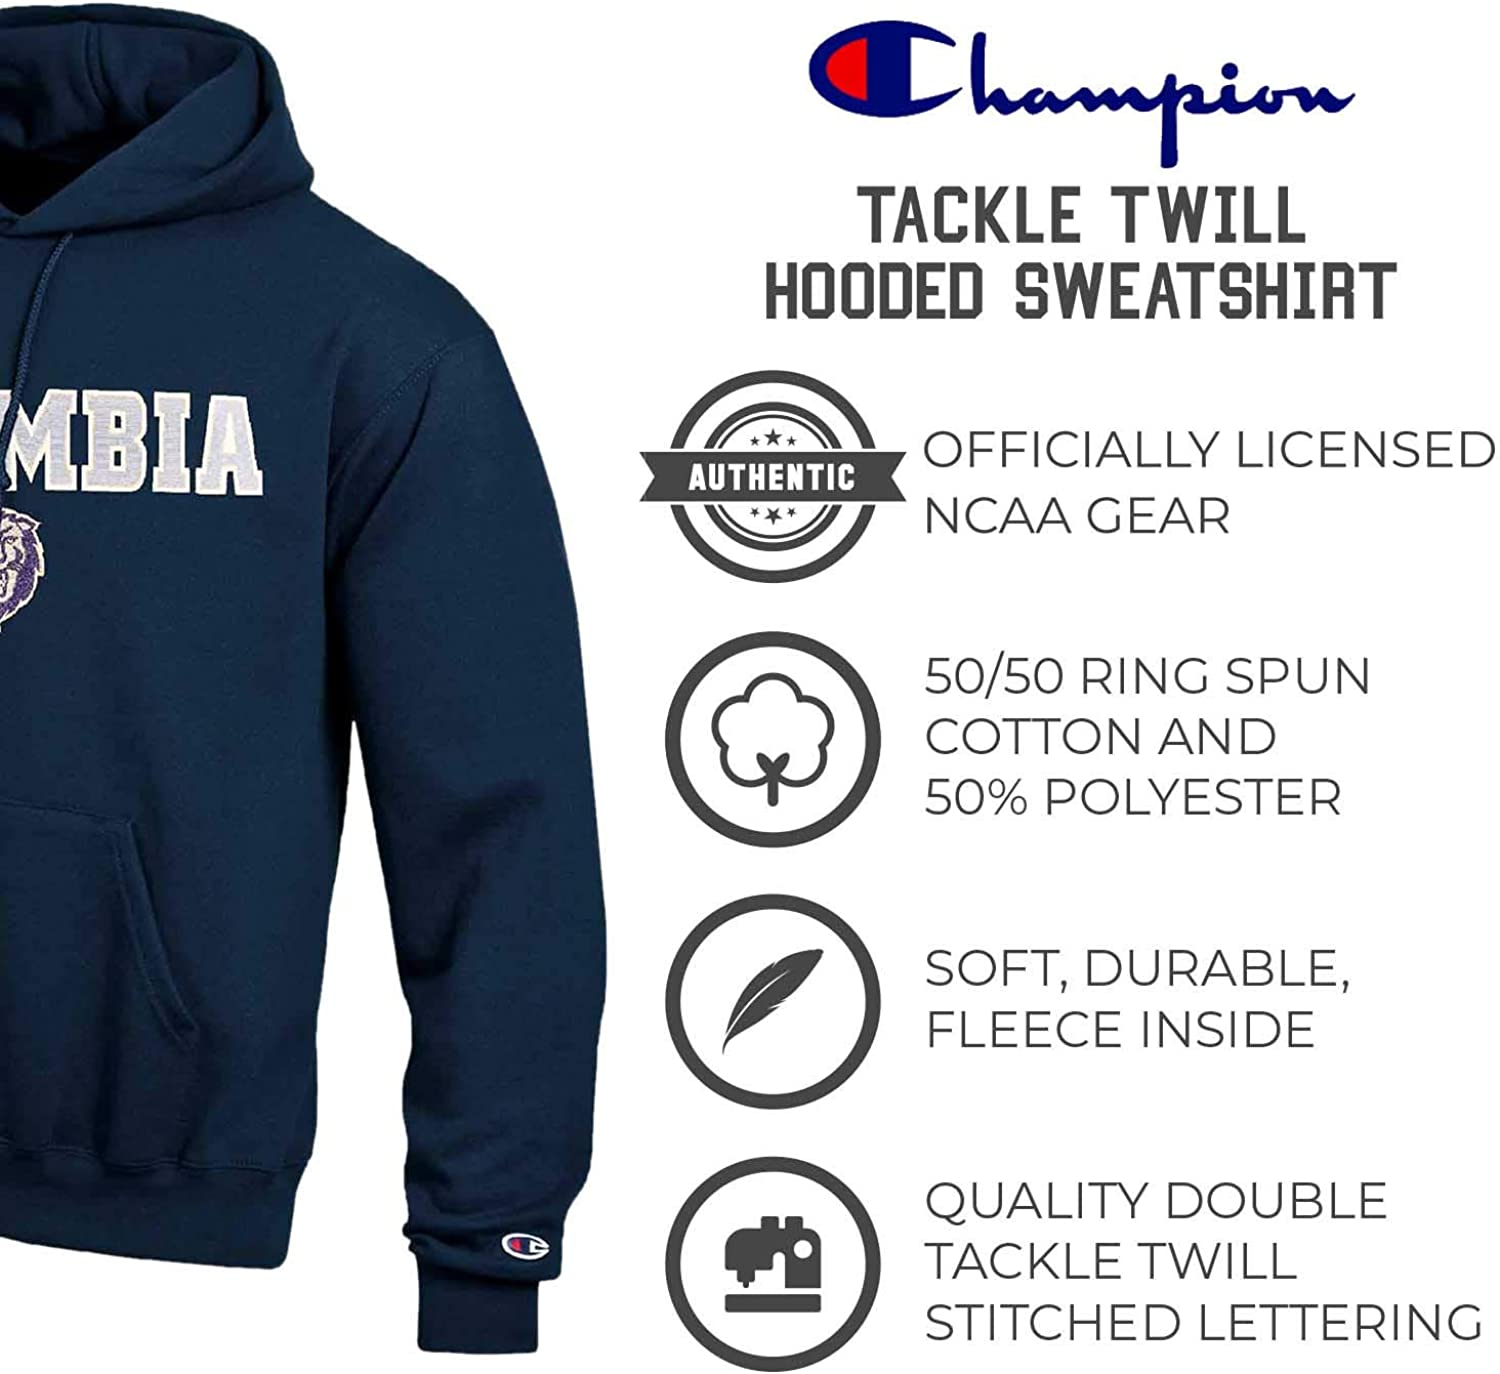 Officially Licensed Unisex NCAA Team Apparel Champion Adult Tackle Twill Hooded Sweatshirt